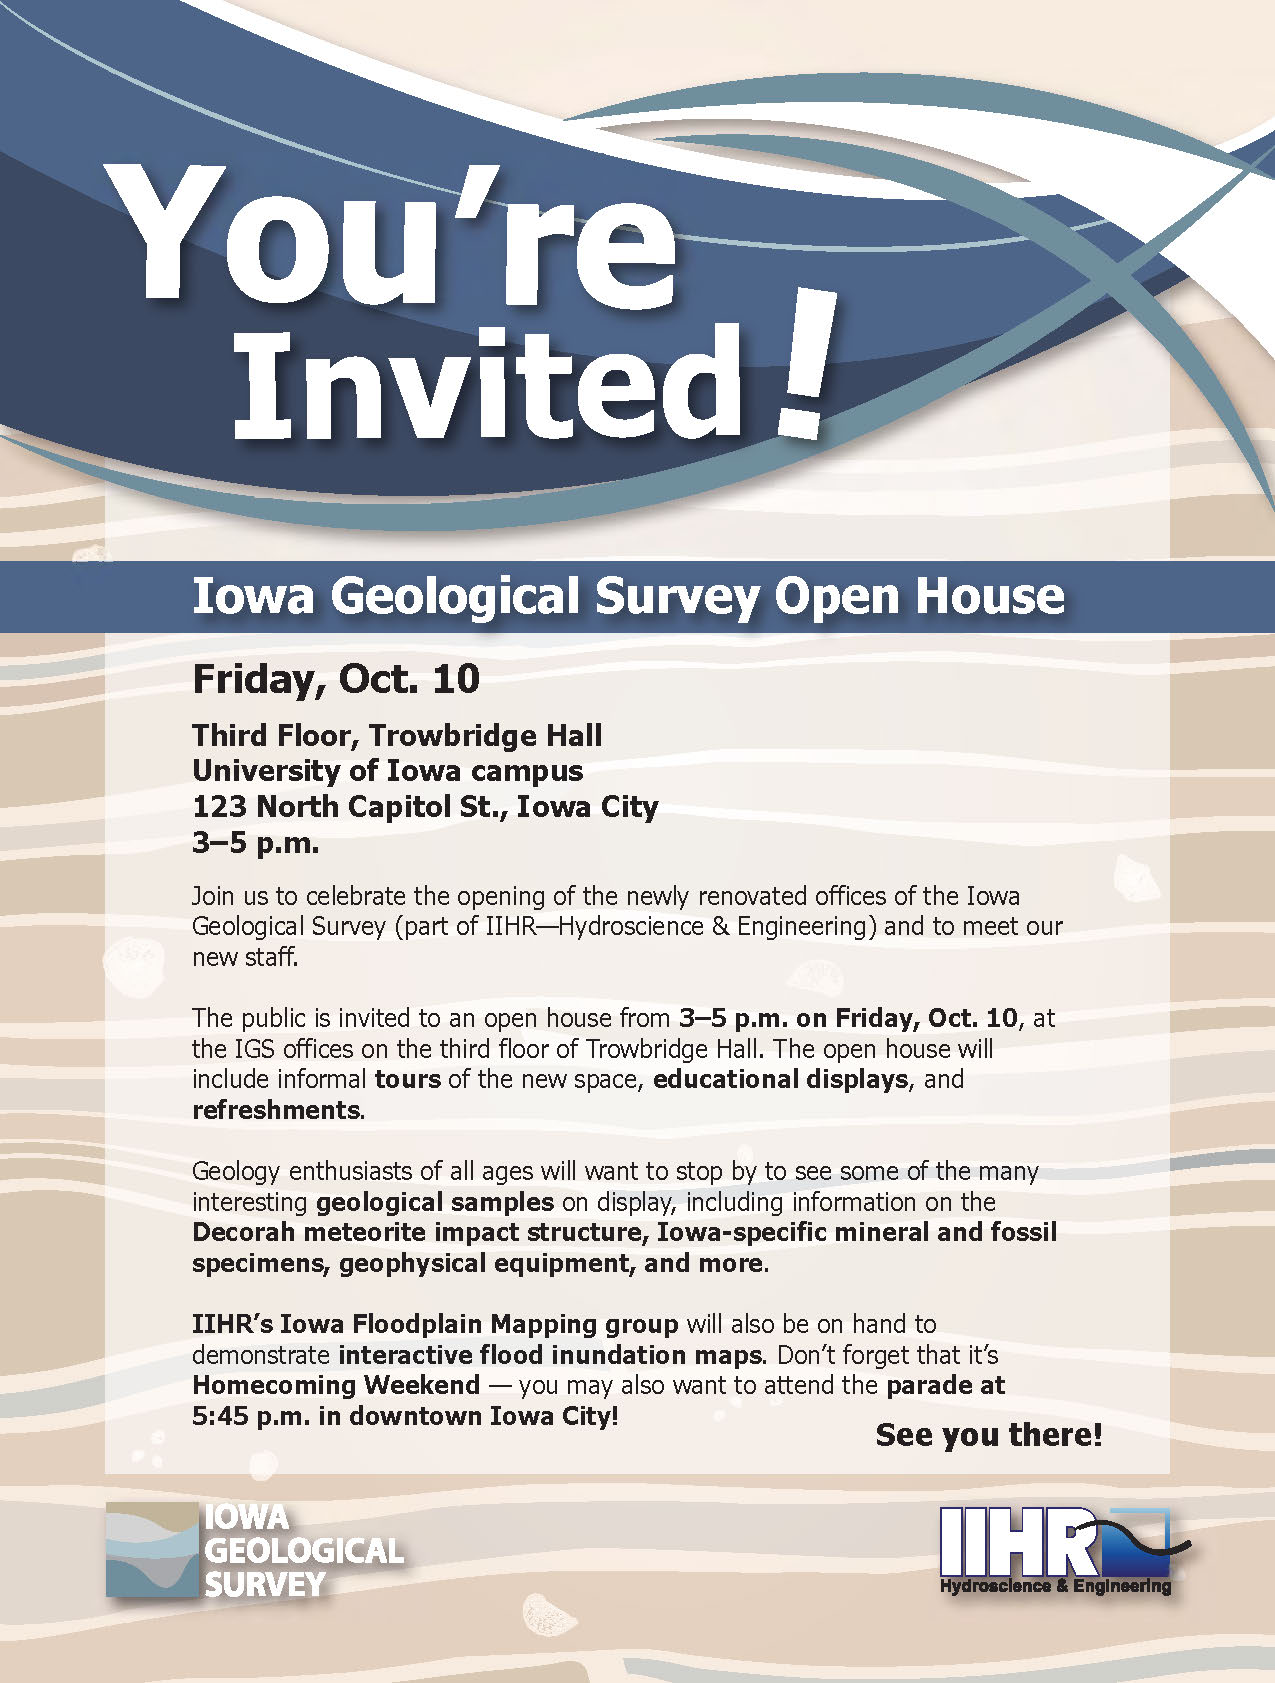 Flyer for an open house.